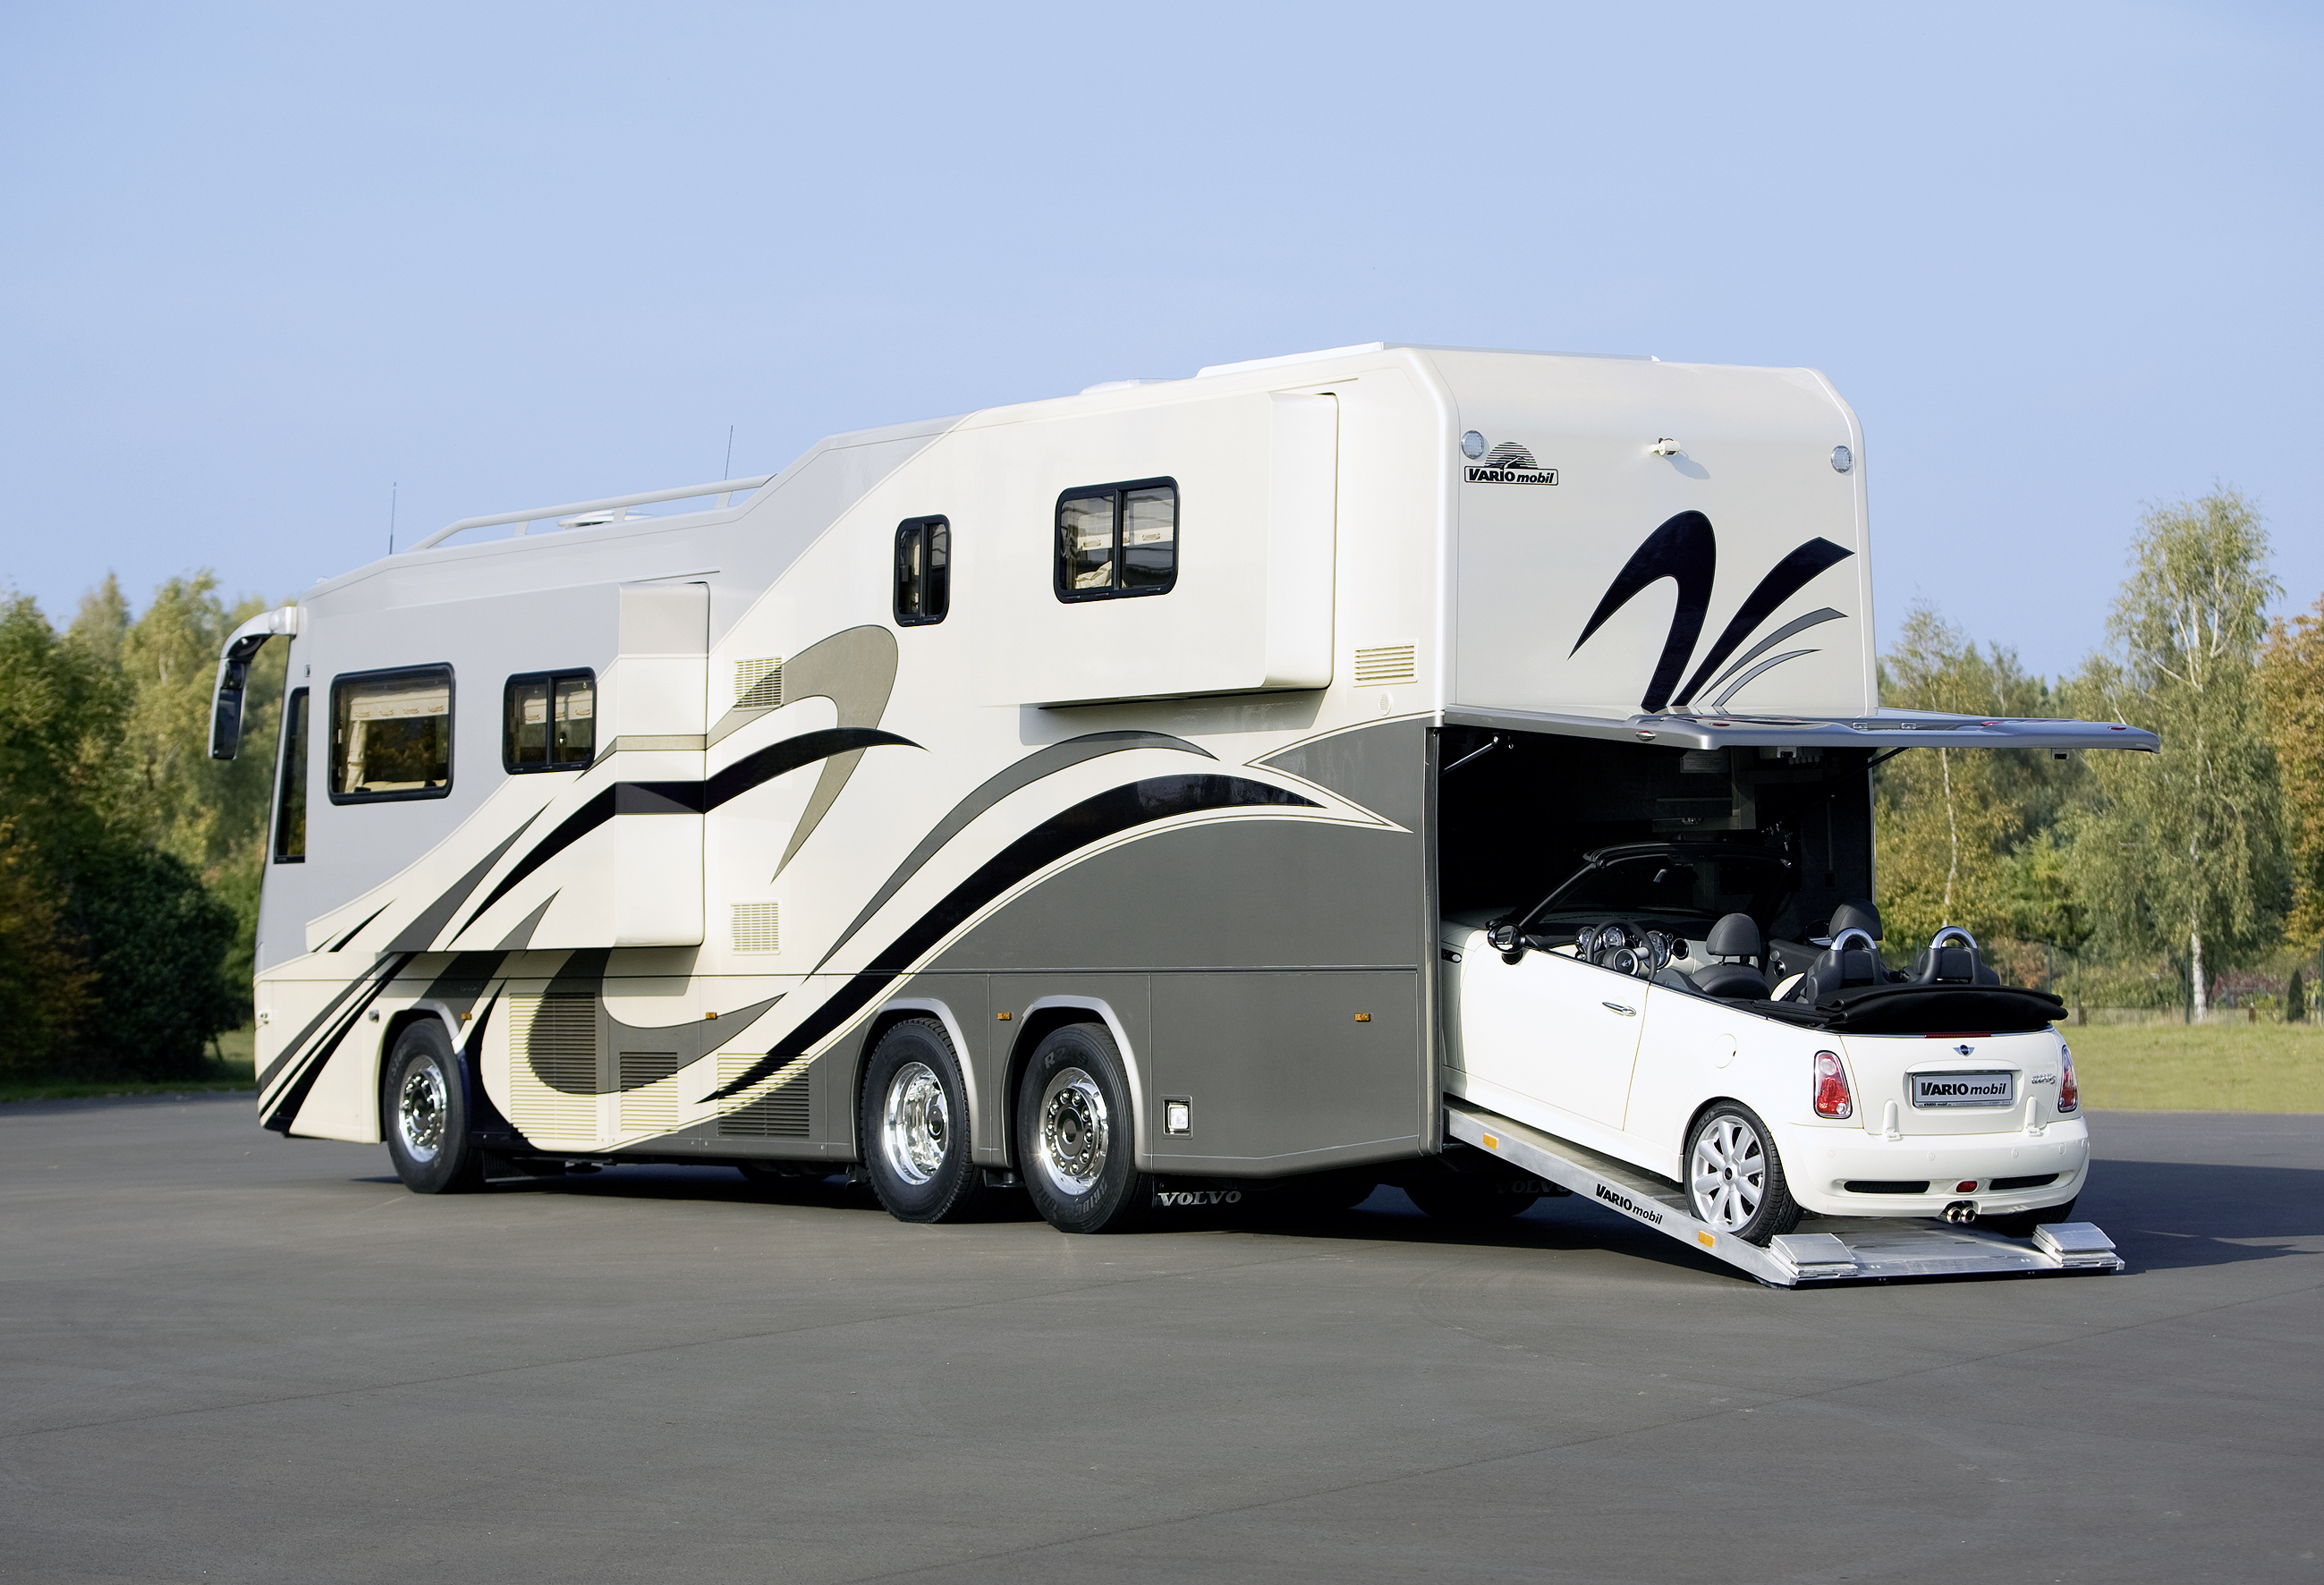 Superlative Rv 12 Meters 3x Axels 3x Slide Outs 420 Hp